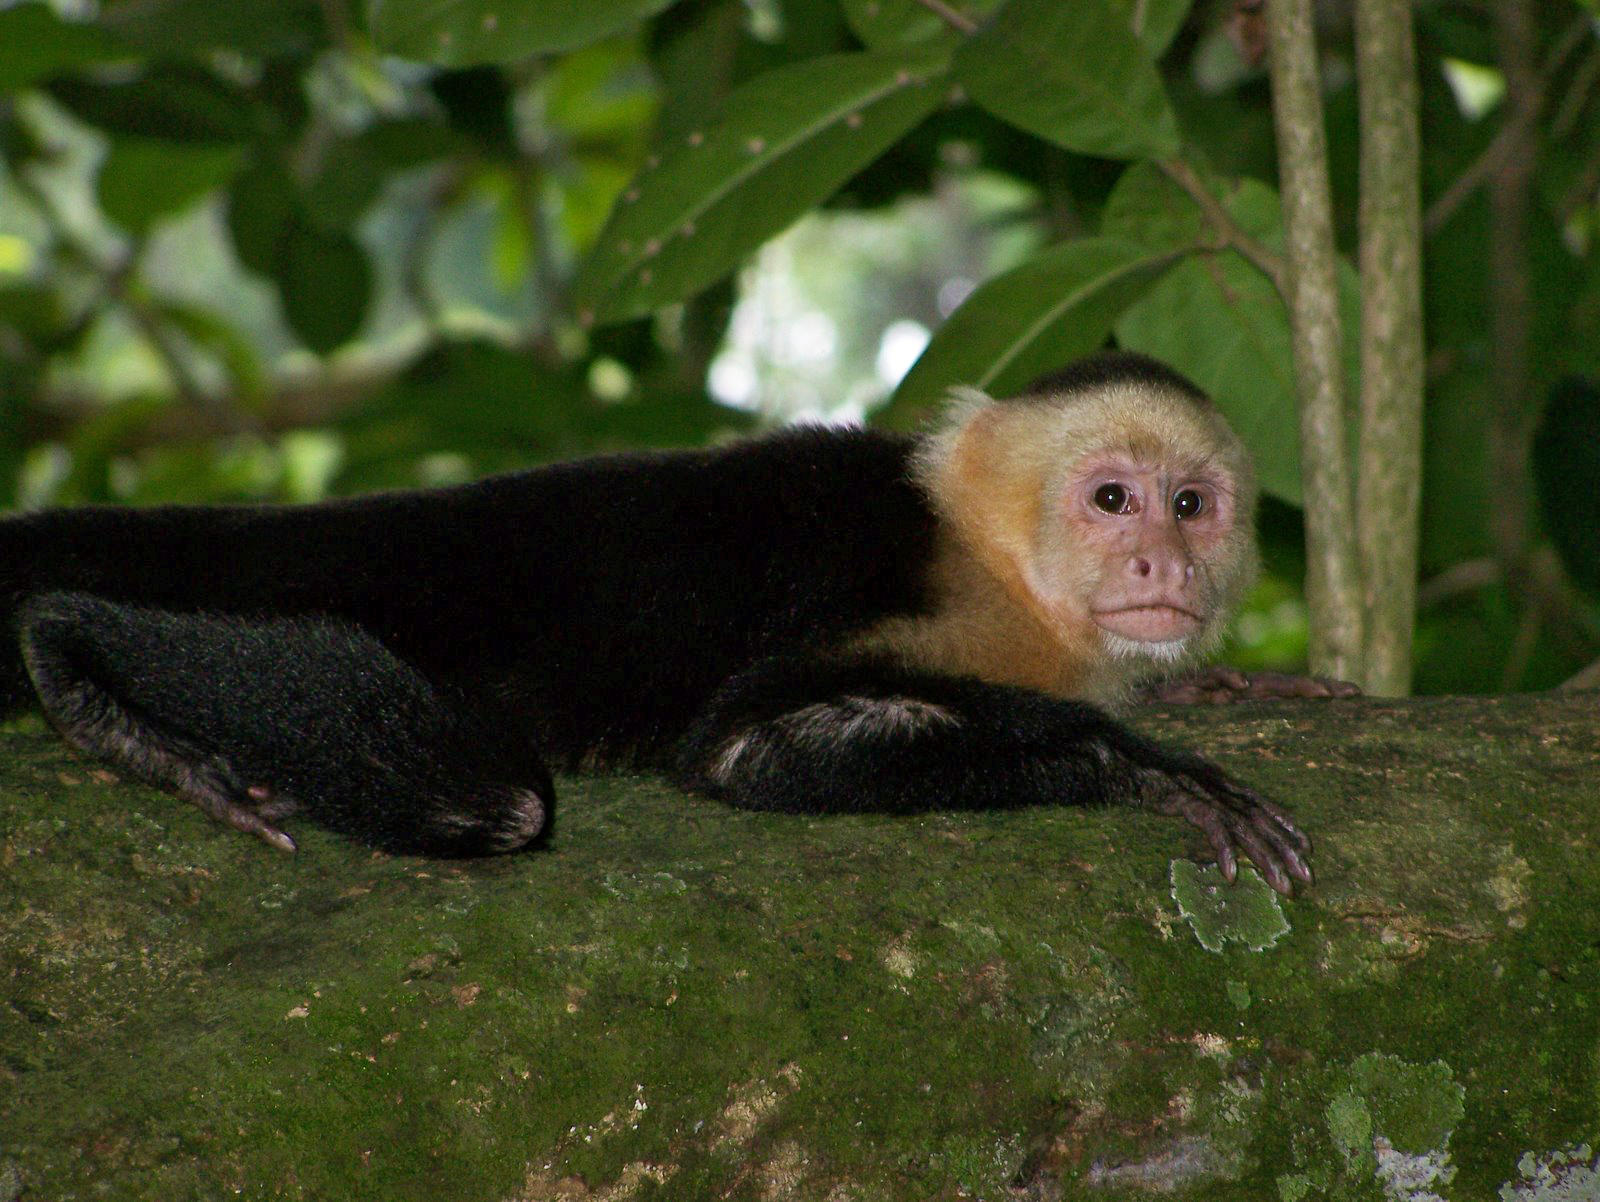 Mutualism - Rainforest Plants and Animals Working Together